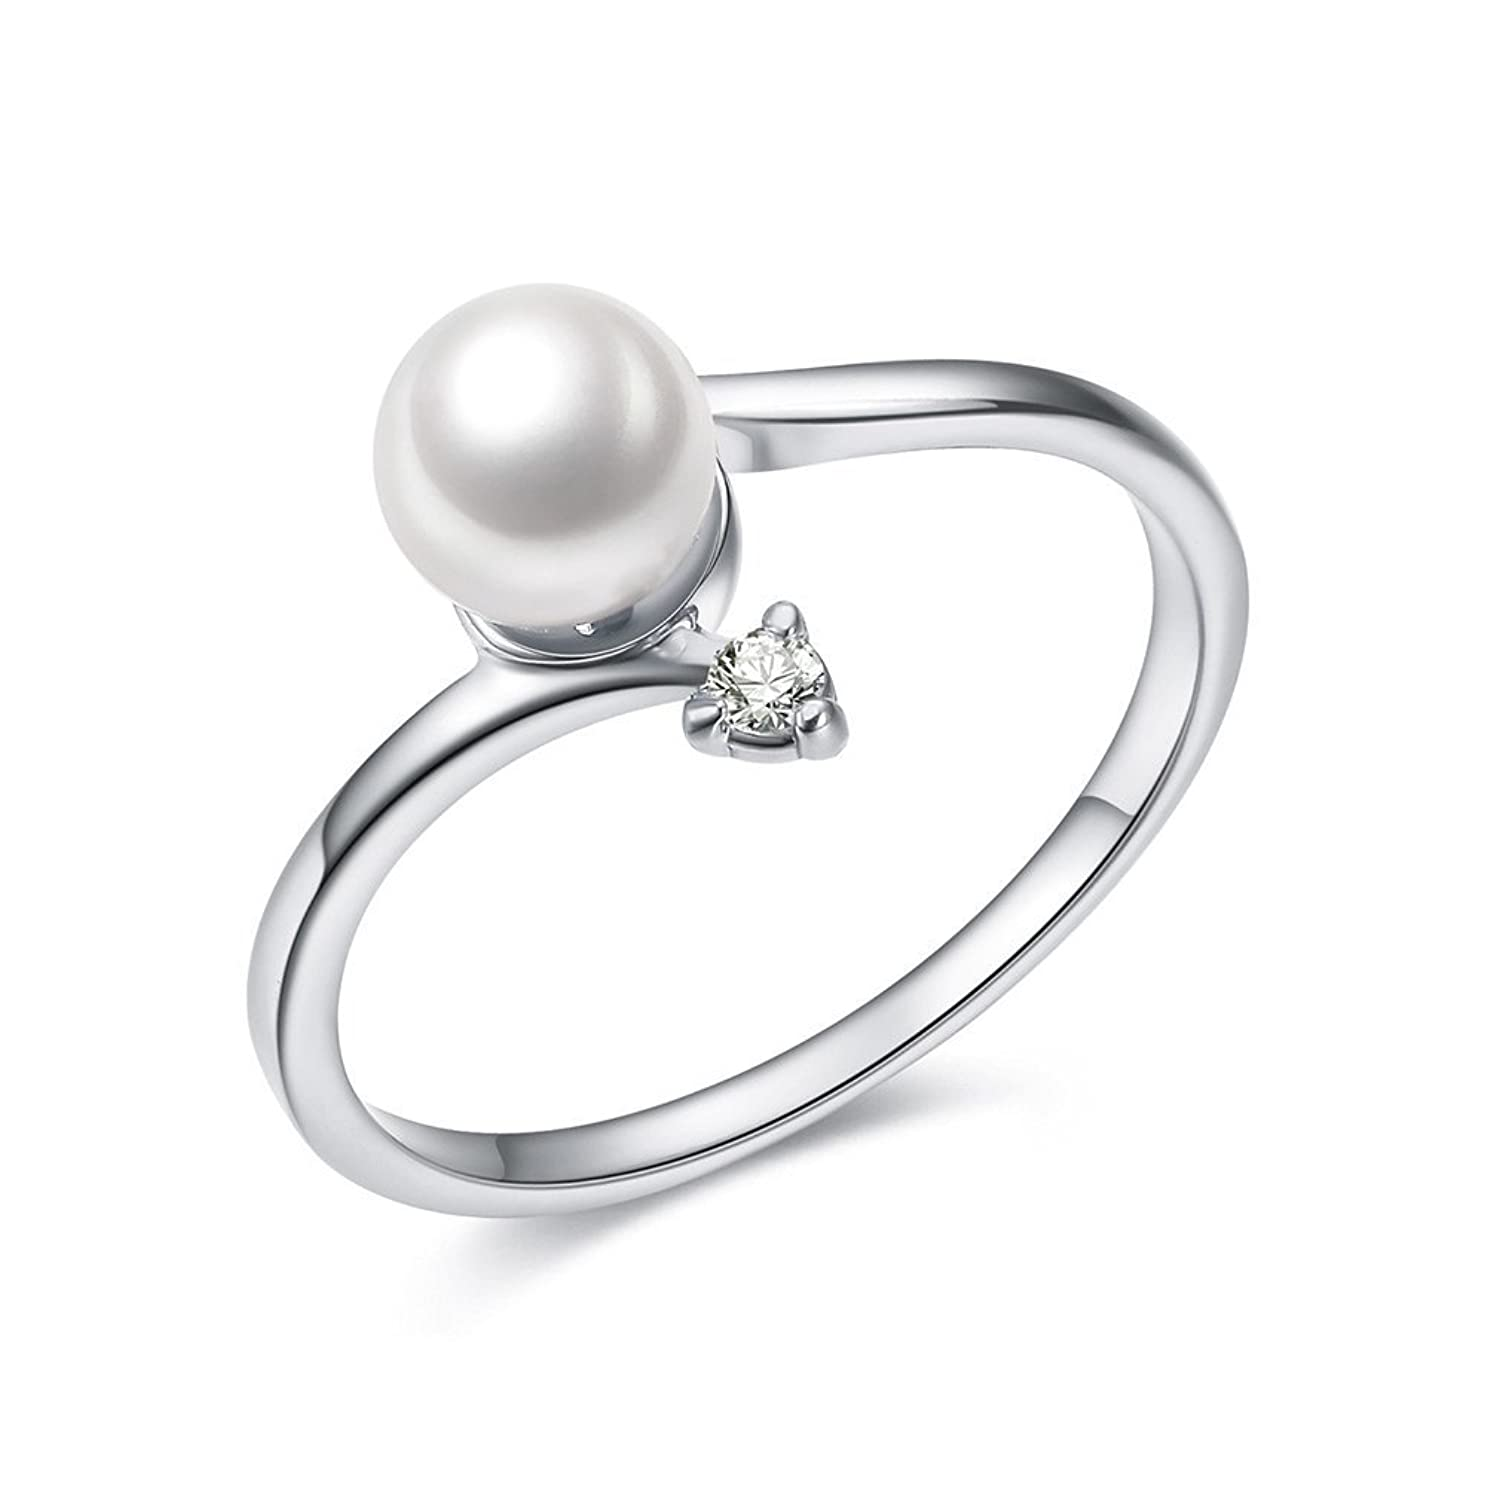 pearl picture white atchafalaya jewelry jose rings of ring balli